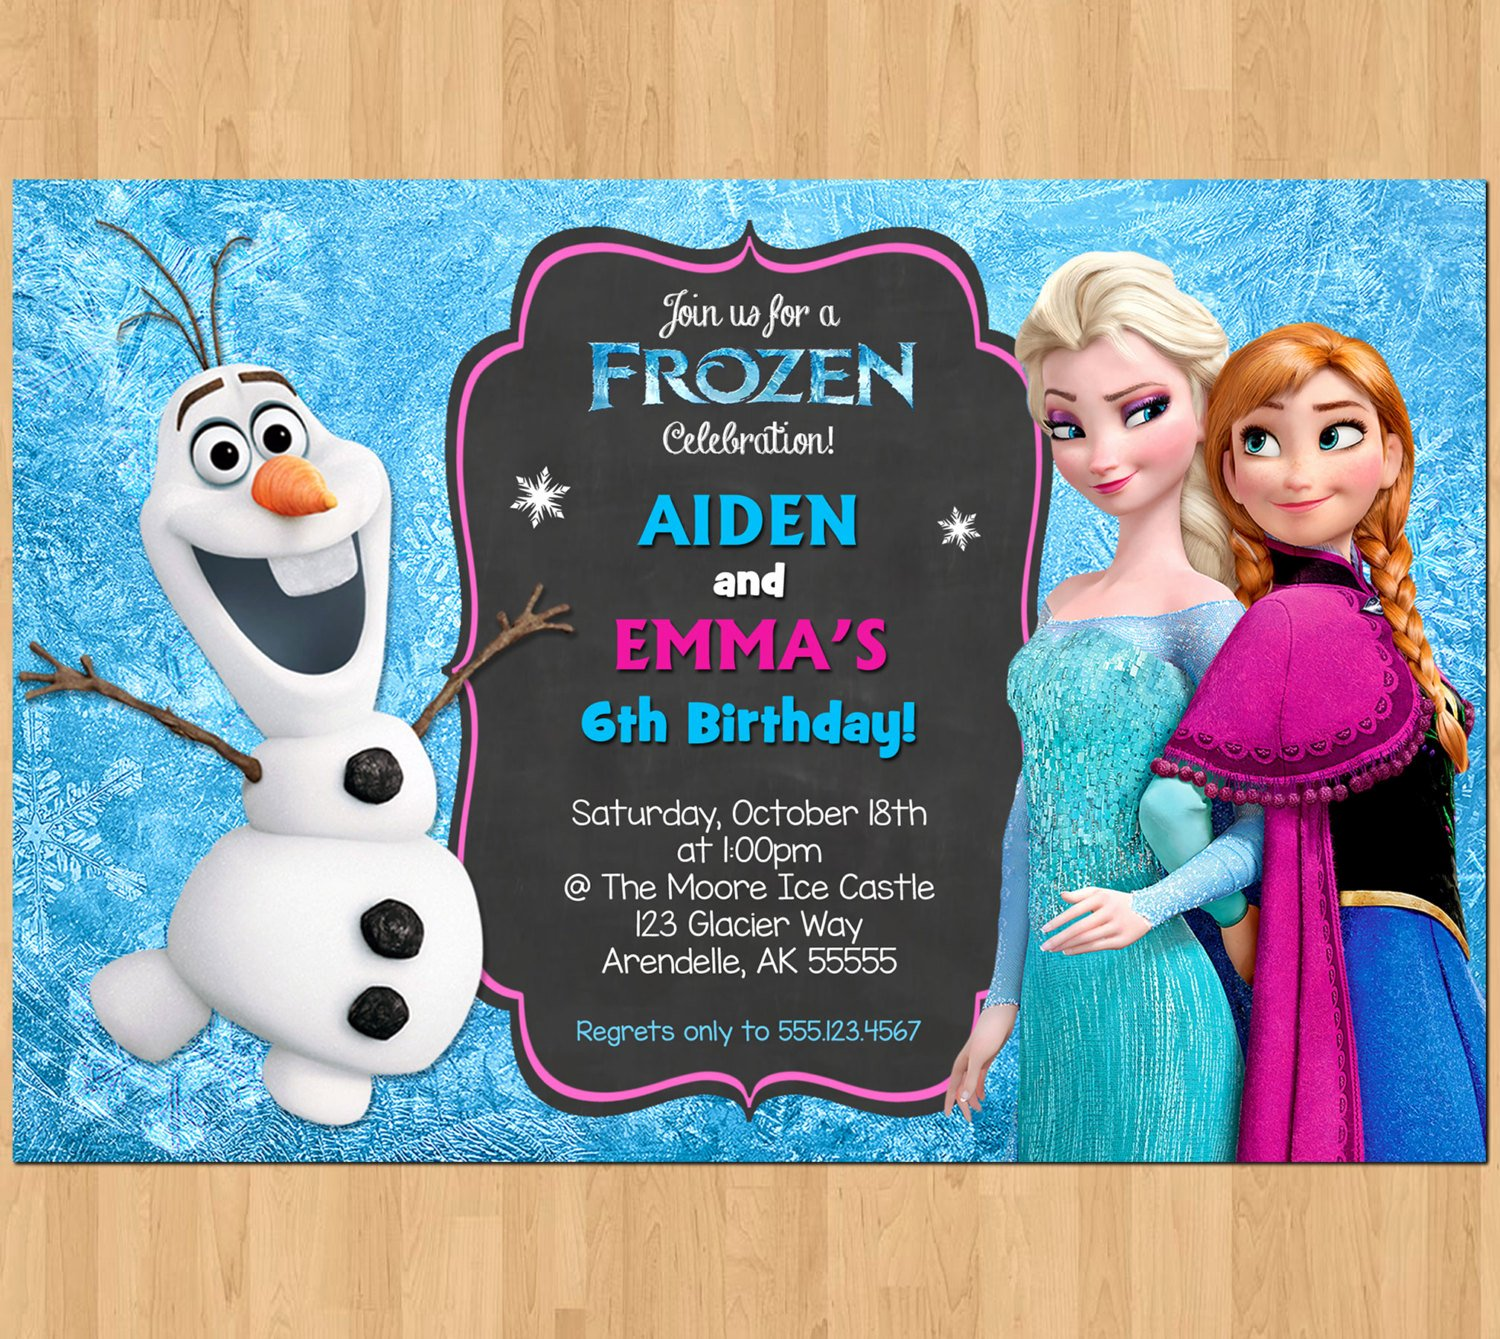 Frozen Birthday Party Invitations Elegant Sibling Birthday Invitation Frozen Invitation Olaf Elsa Anna